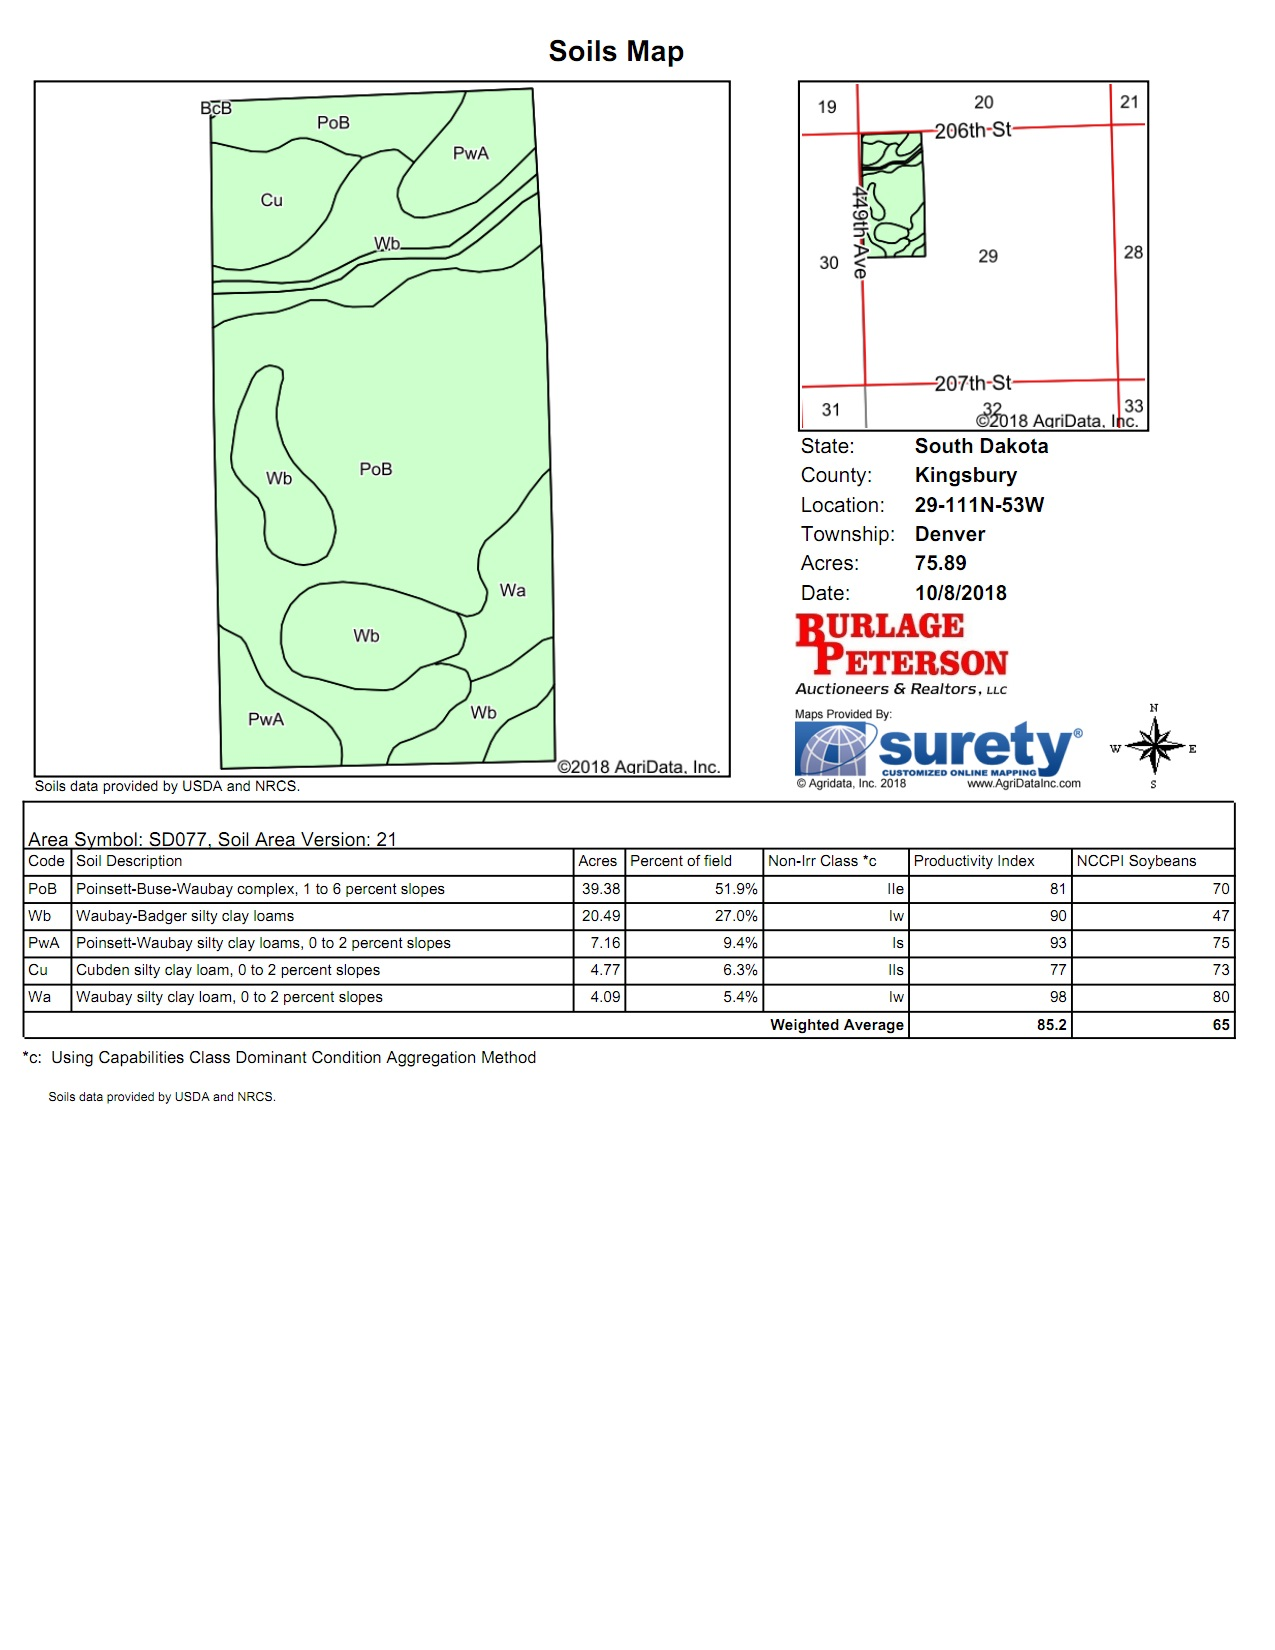 Tract I Soil Map